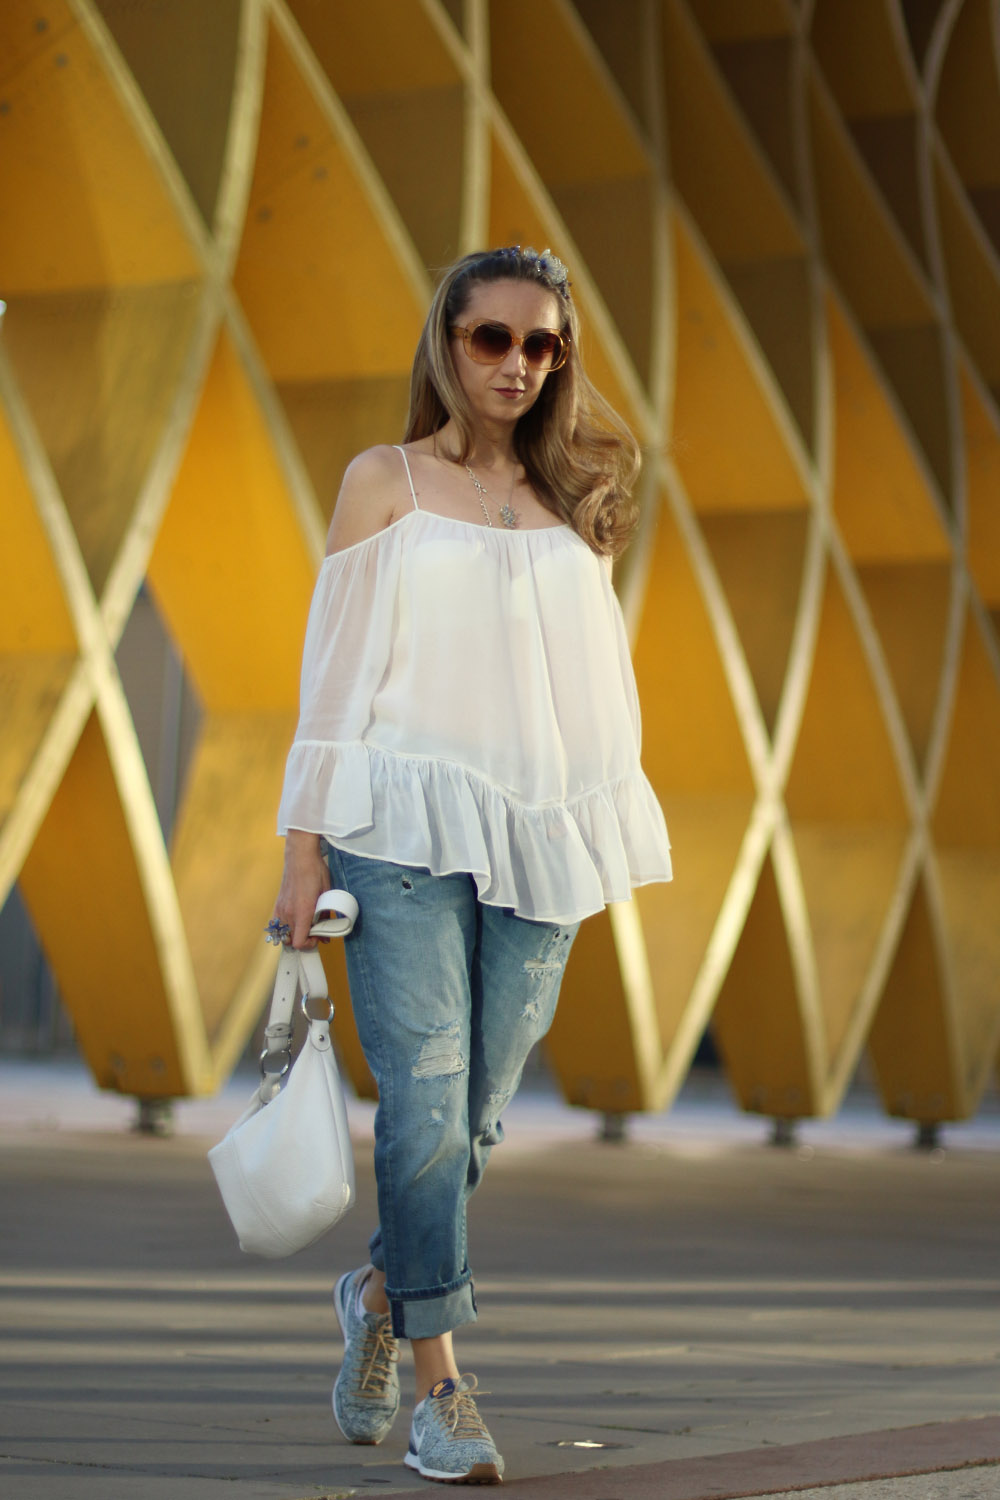 colourclub-fashionblog-outfit-off-the-shoulder-top-destroyed-jeans-furla-bag-austria-center3